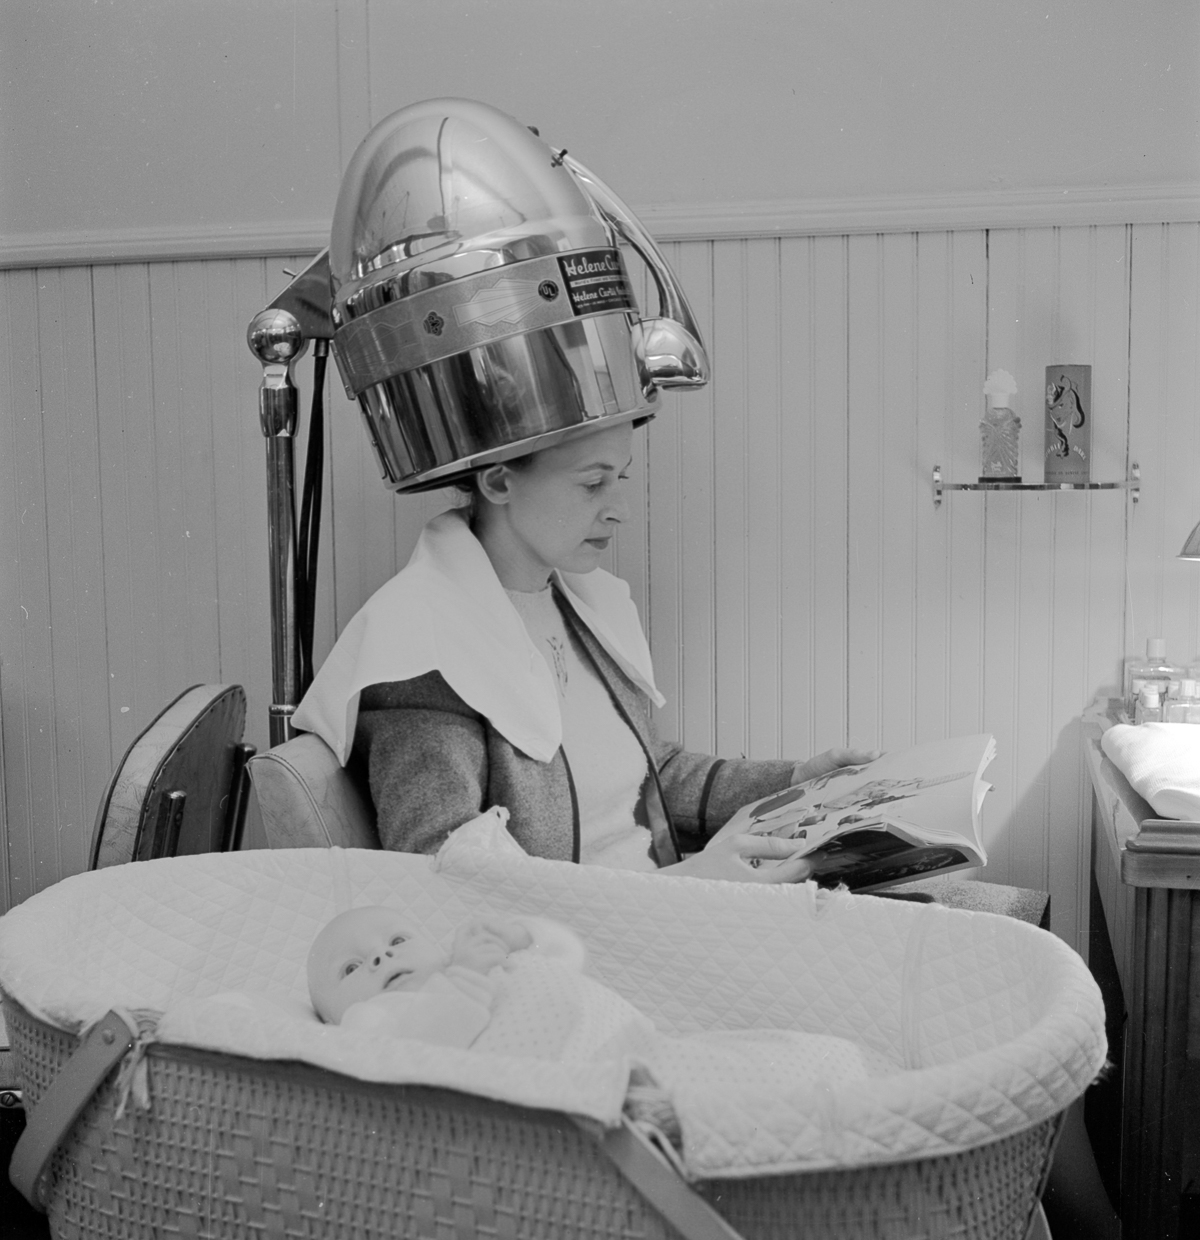 Amazing Com: These Early Hair Dryers From The 1920's Look Like They Are